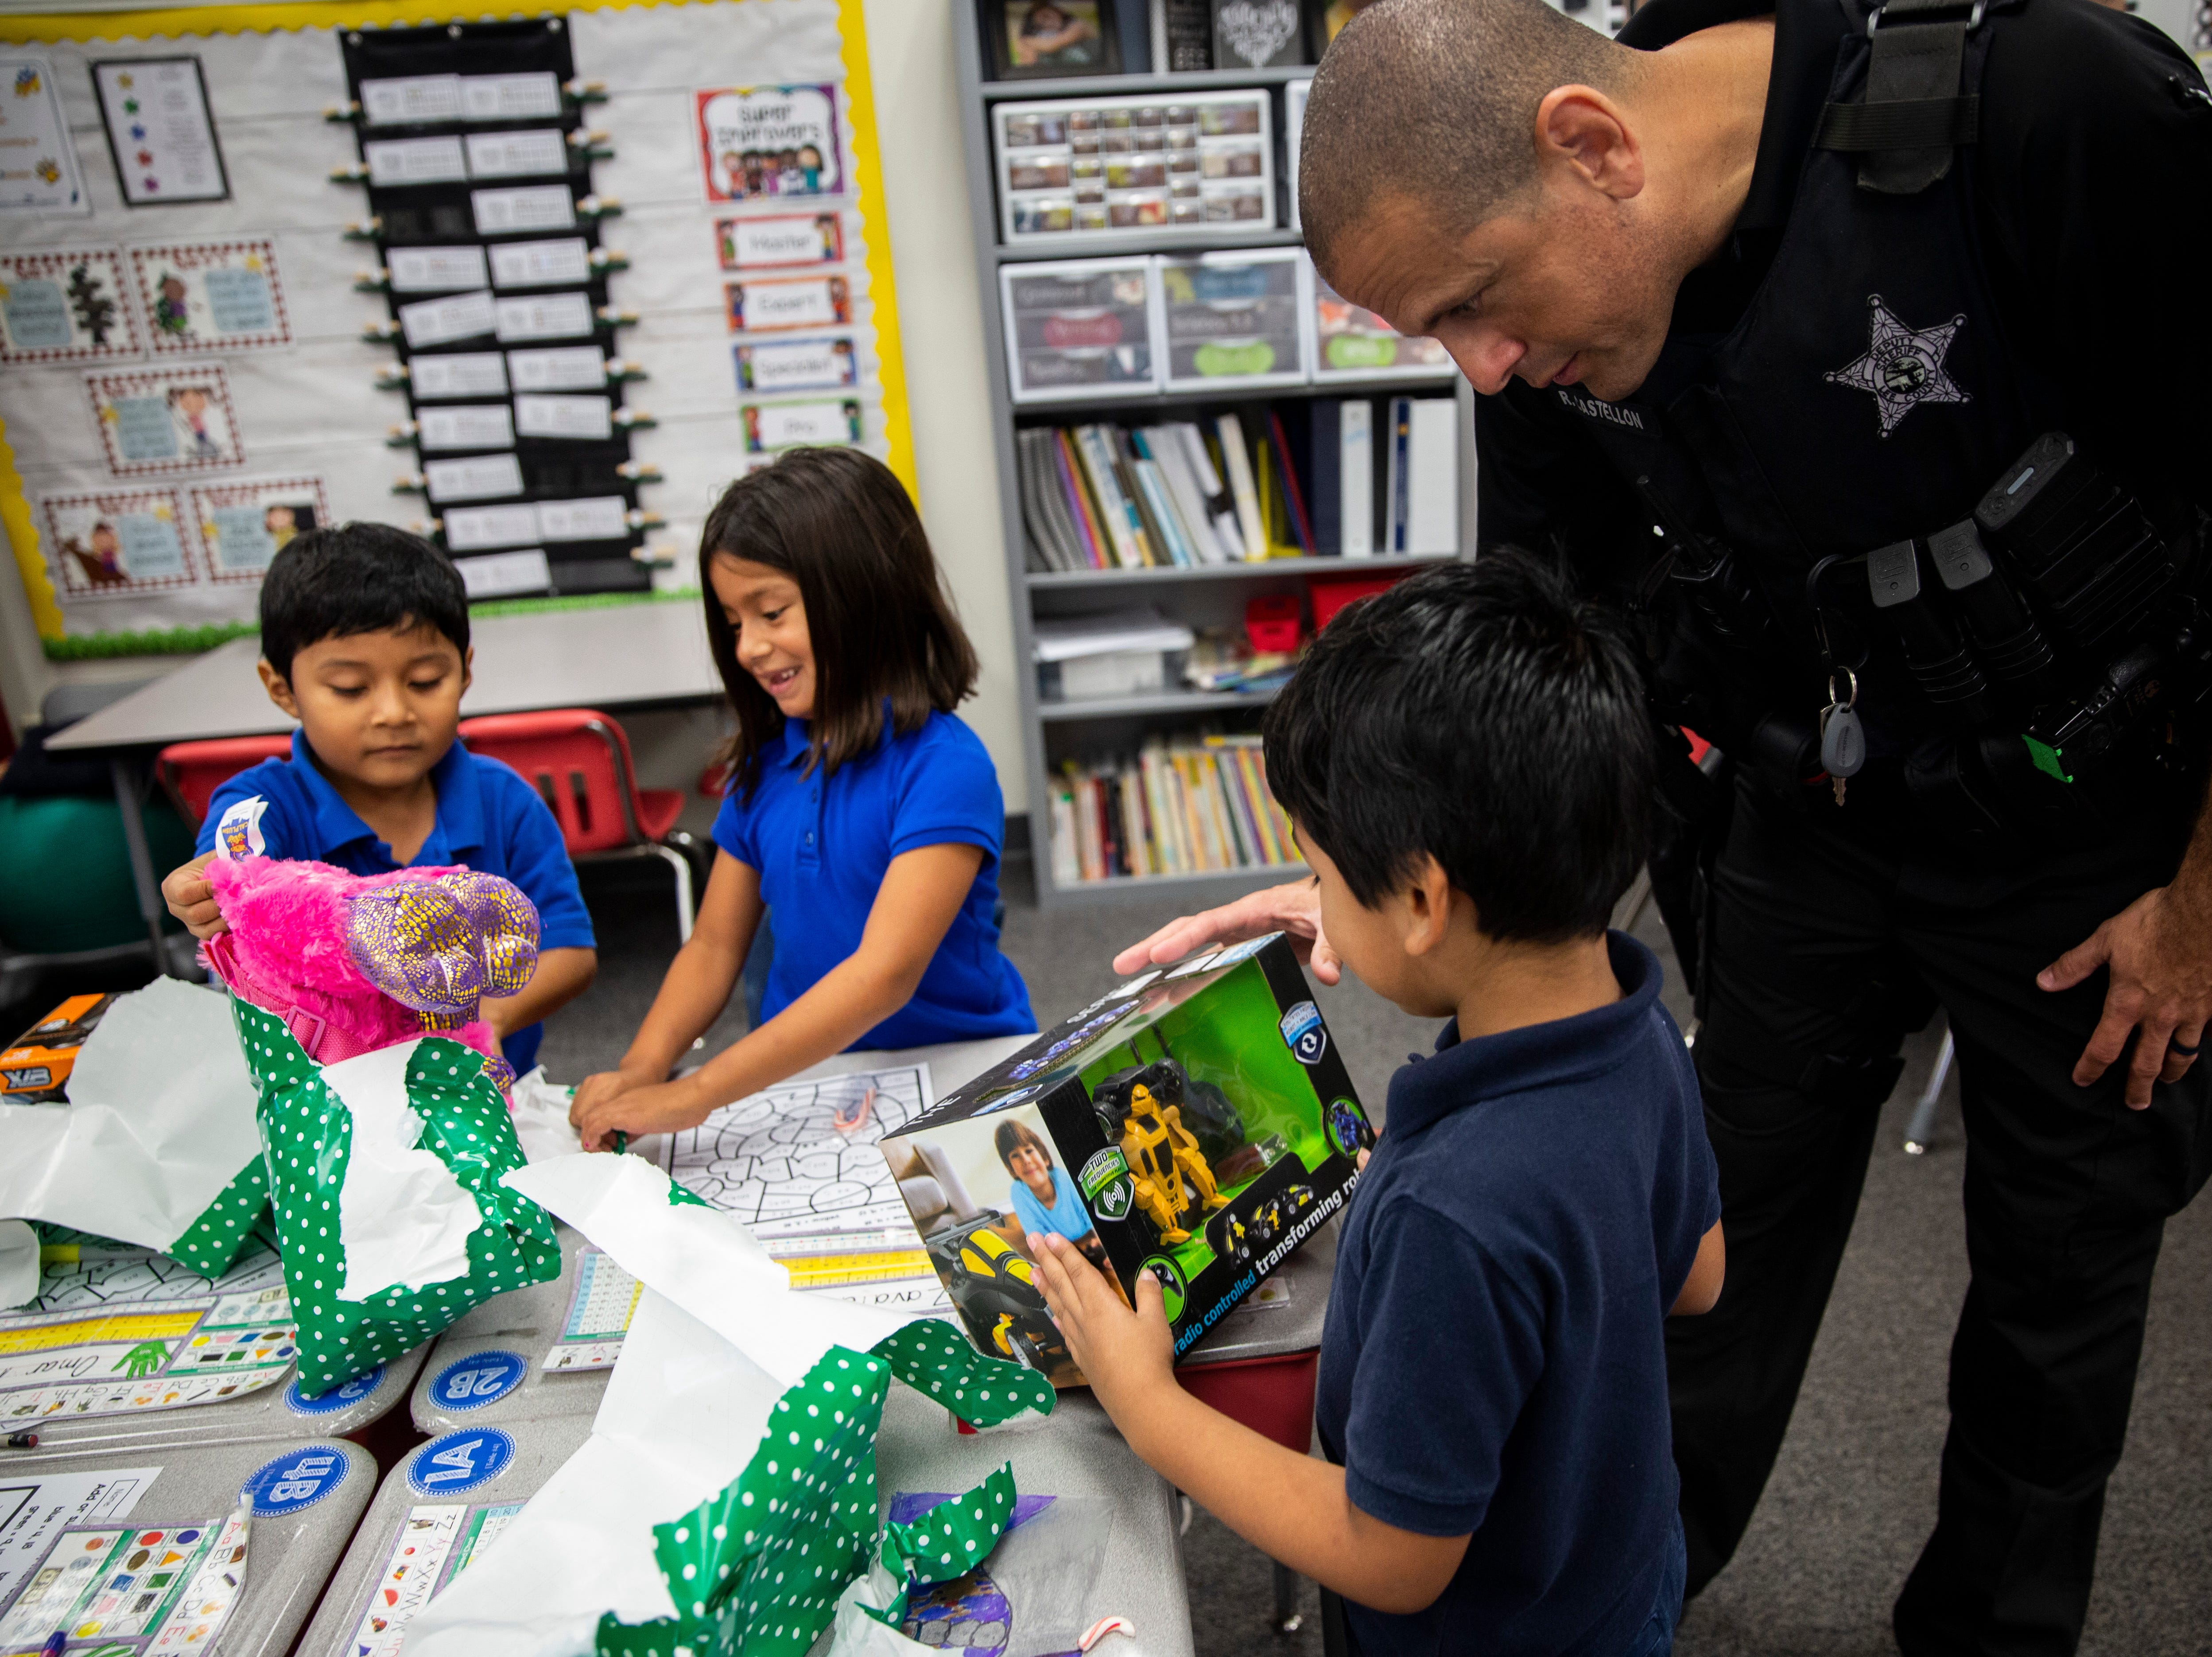 Richard Castellon, K-9 handler with the Lee County Sheriff's Office, talks to Christopher Mendez, Ramirez about his new toy donated by Empowered Latinos on Thursday, December 20, 2018, at Bonita Springs Elementary School in Bonita Springs.